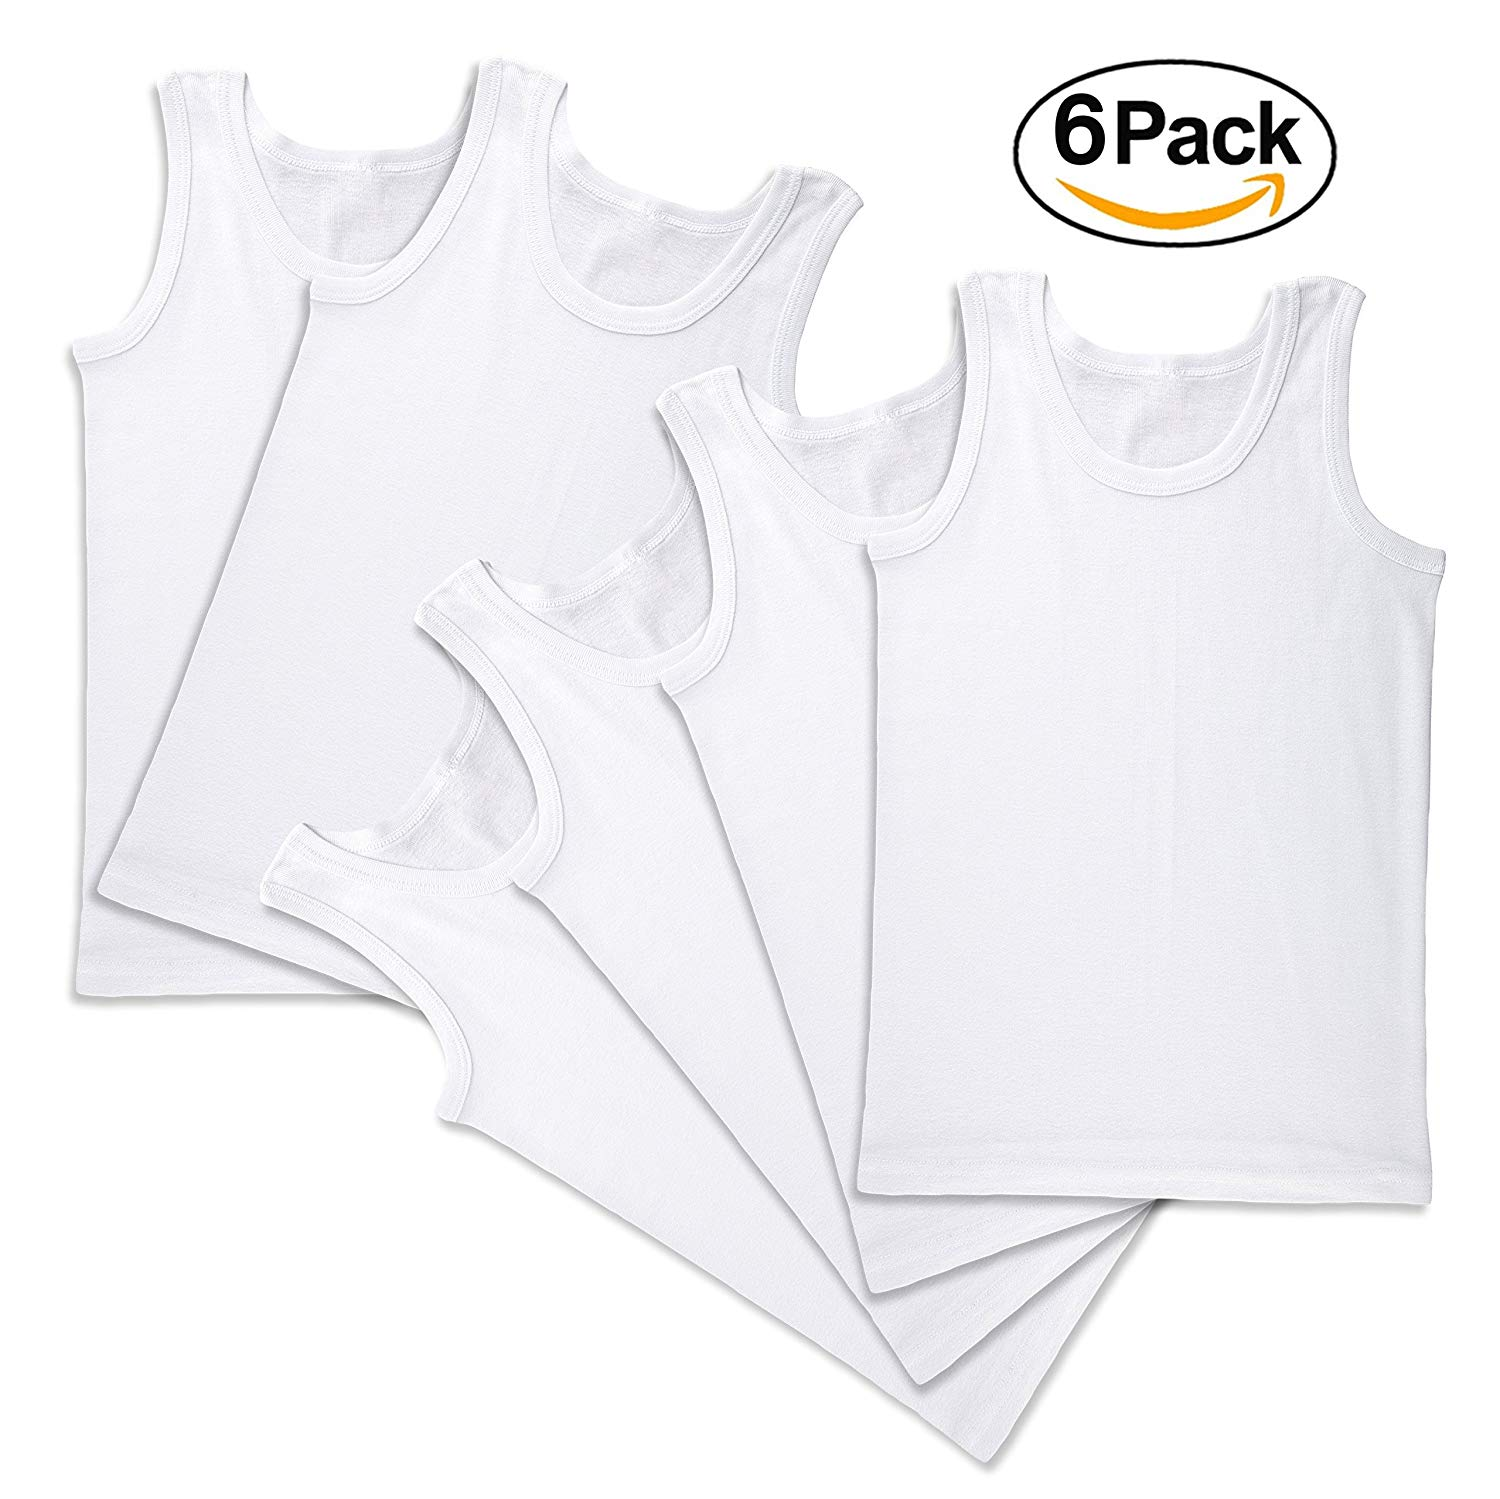 f13d804c748f74 Get Quotations · Agar Place Boys  6 Pack Tank Super Soft 100% Cotton  Undershirt Sleeveless Tees